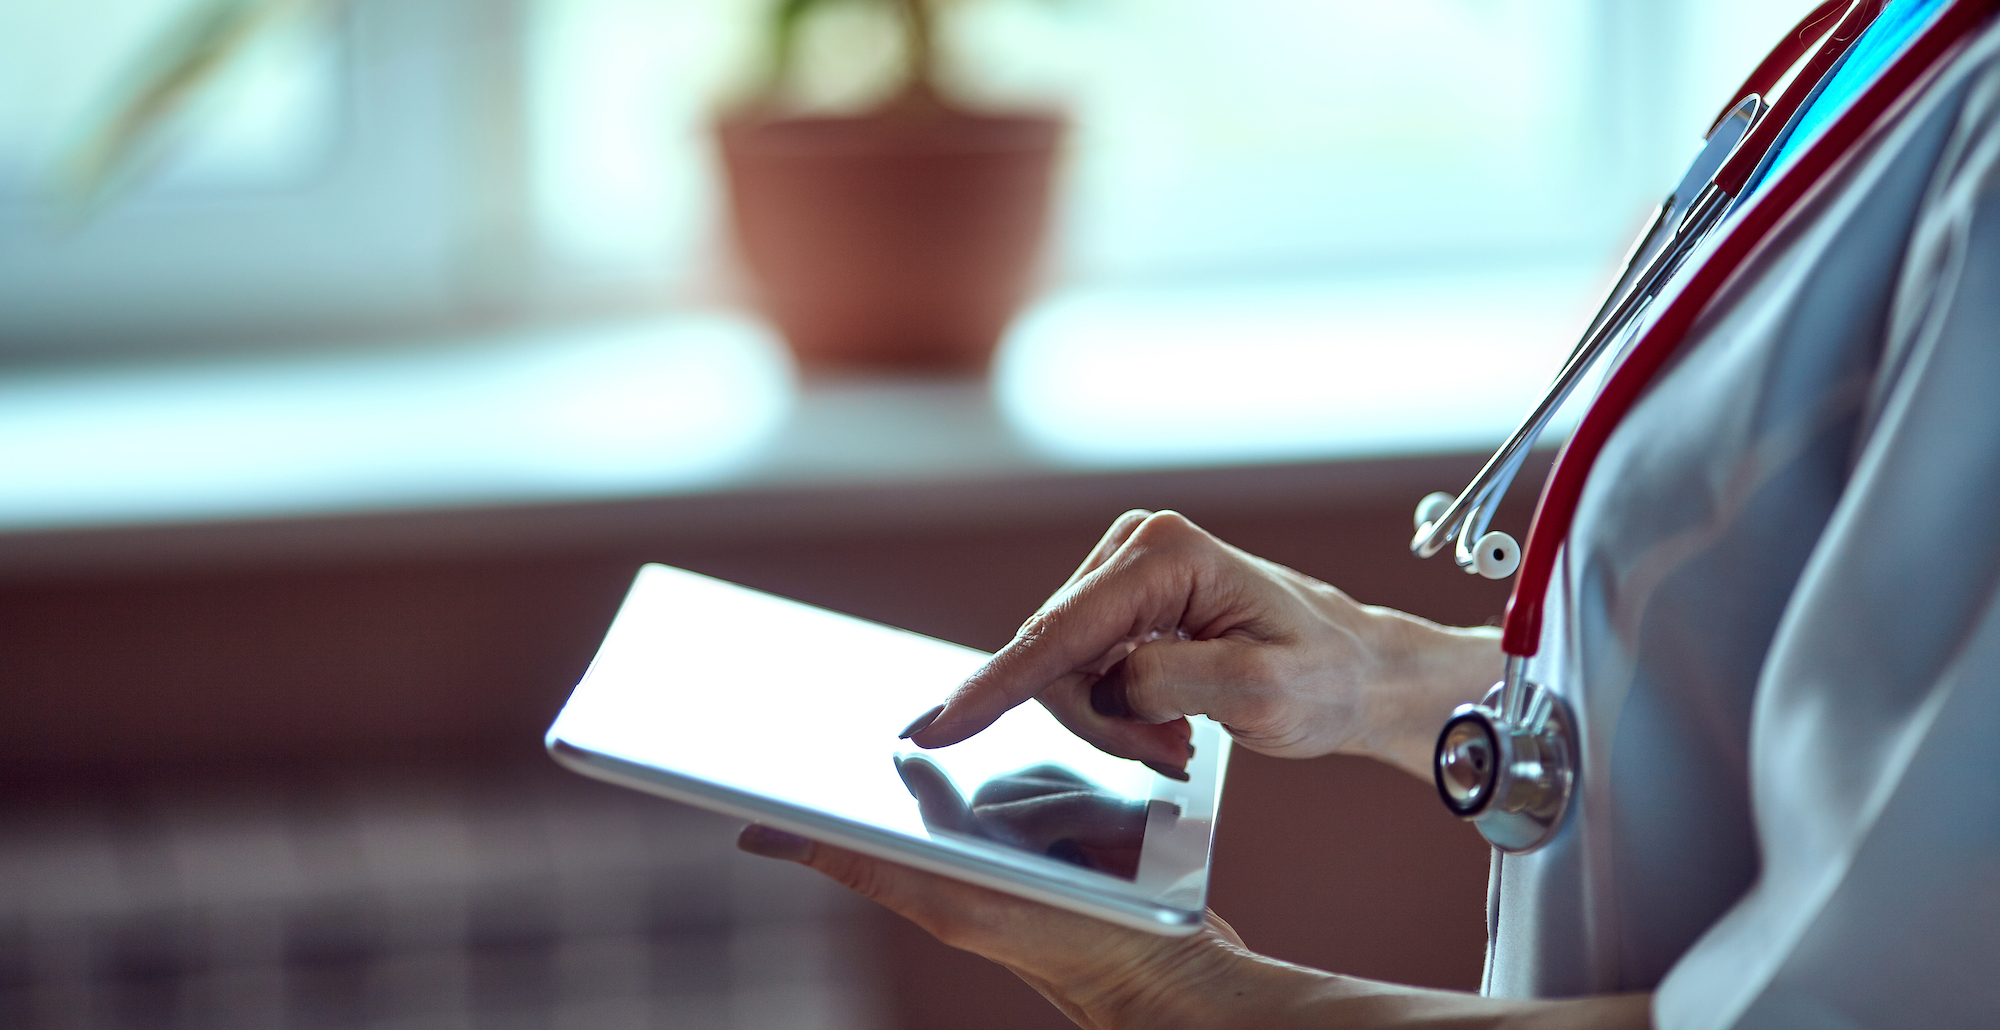 Qualities to Look for in Medical Scheduling Software